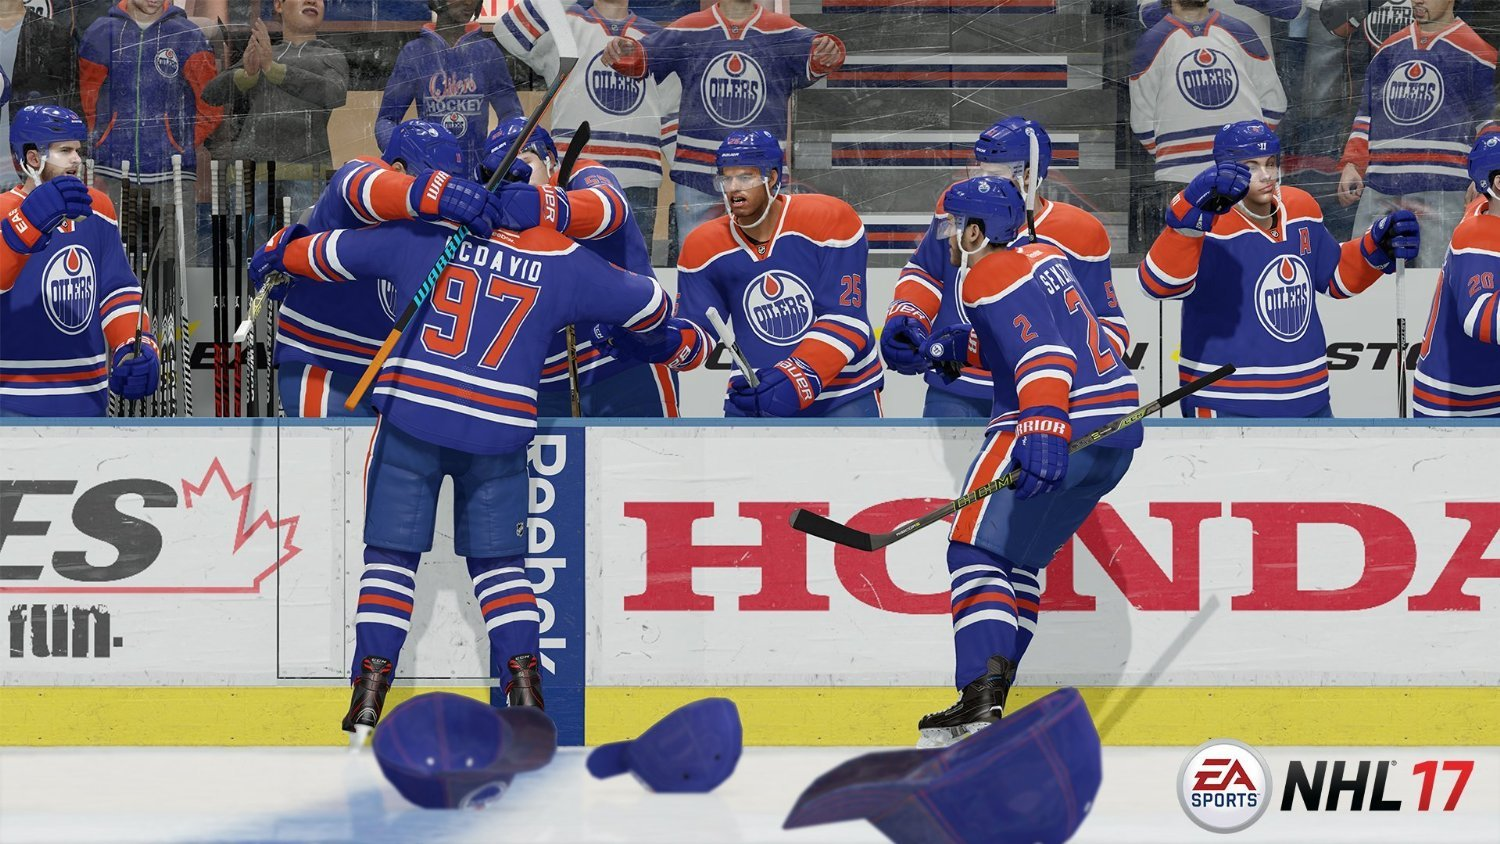 Nhl 17 (Xbox One) Review 3